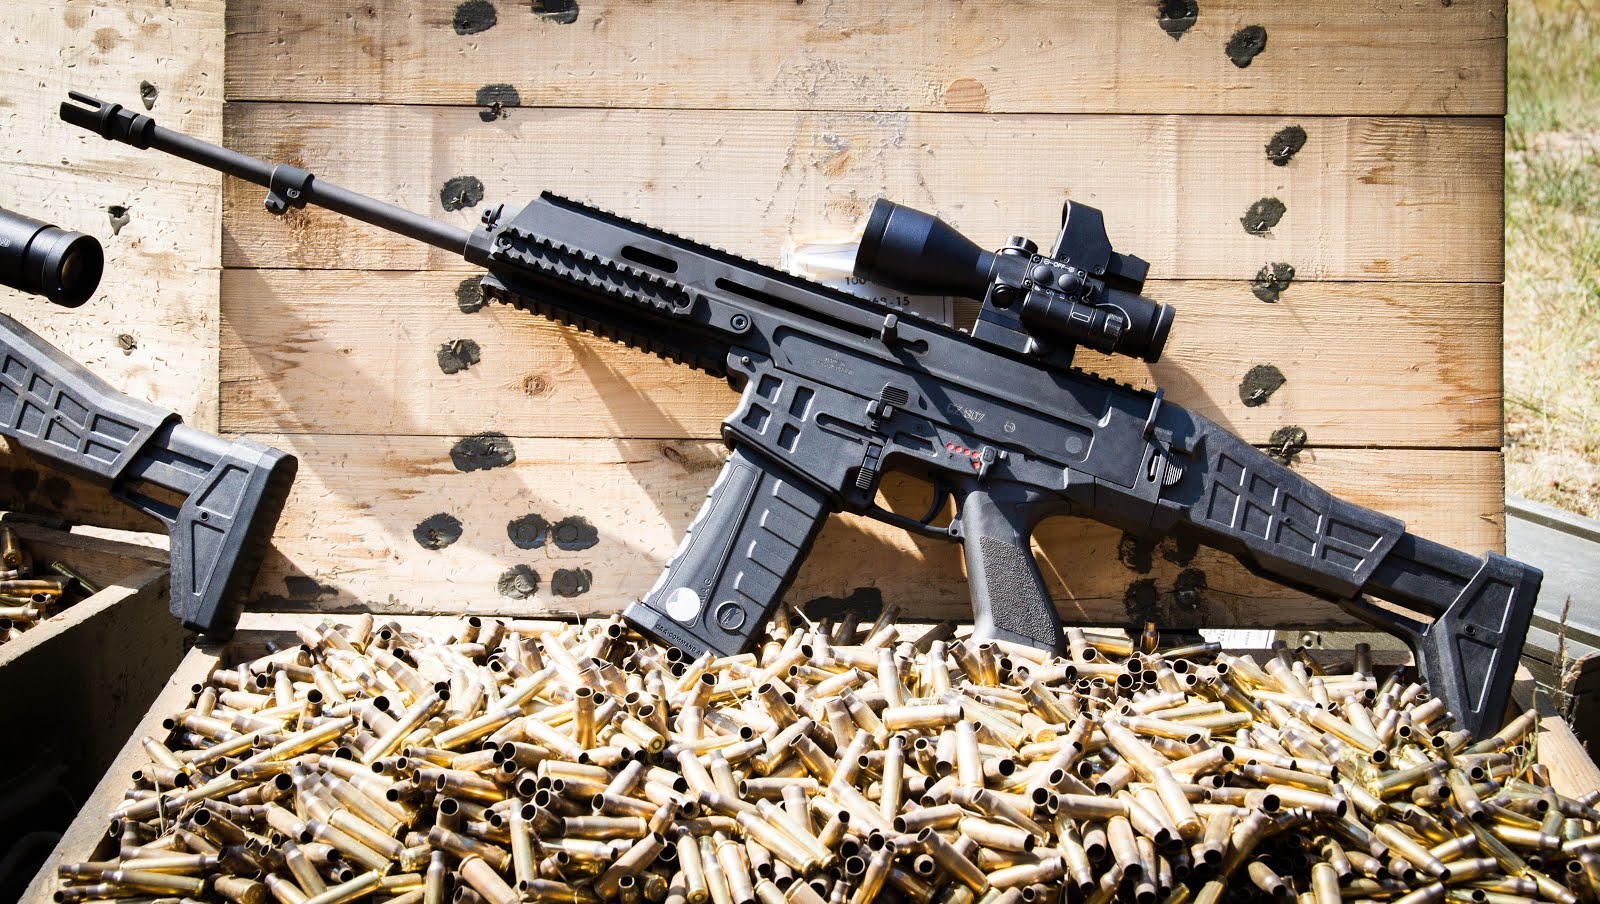 Top assault rifle in the world